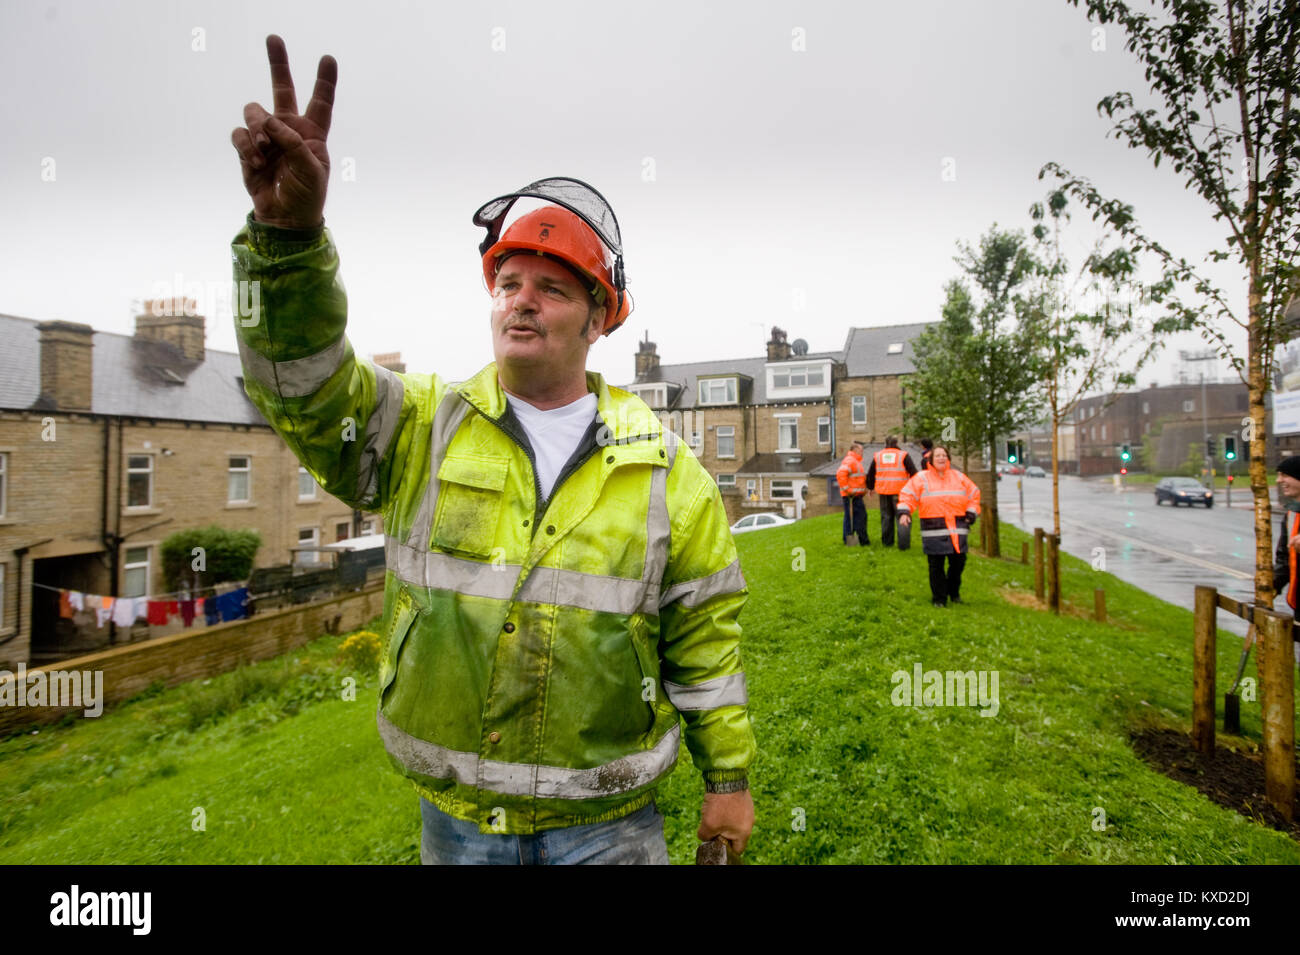 Maintaining recently landscaped area next to Manningham Mill, Bradford - Stock Image